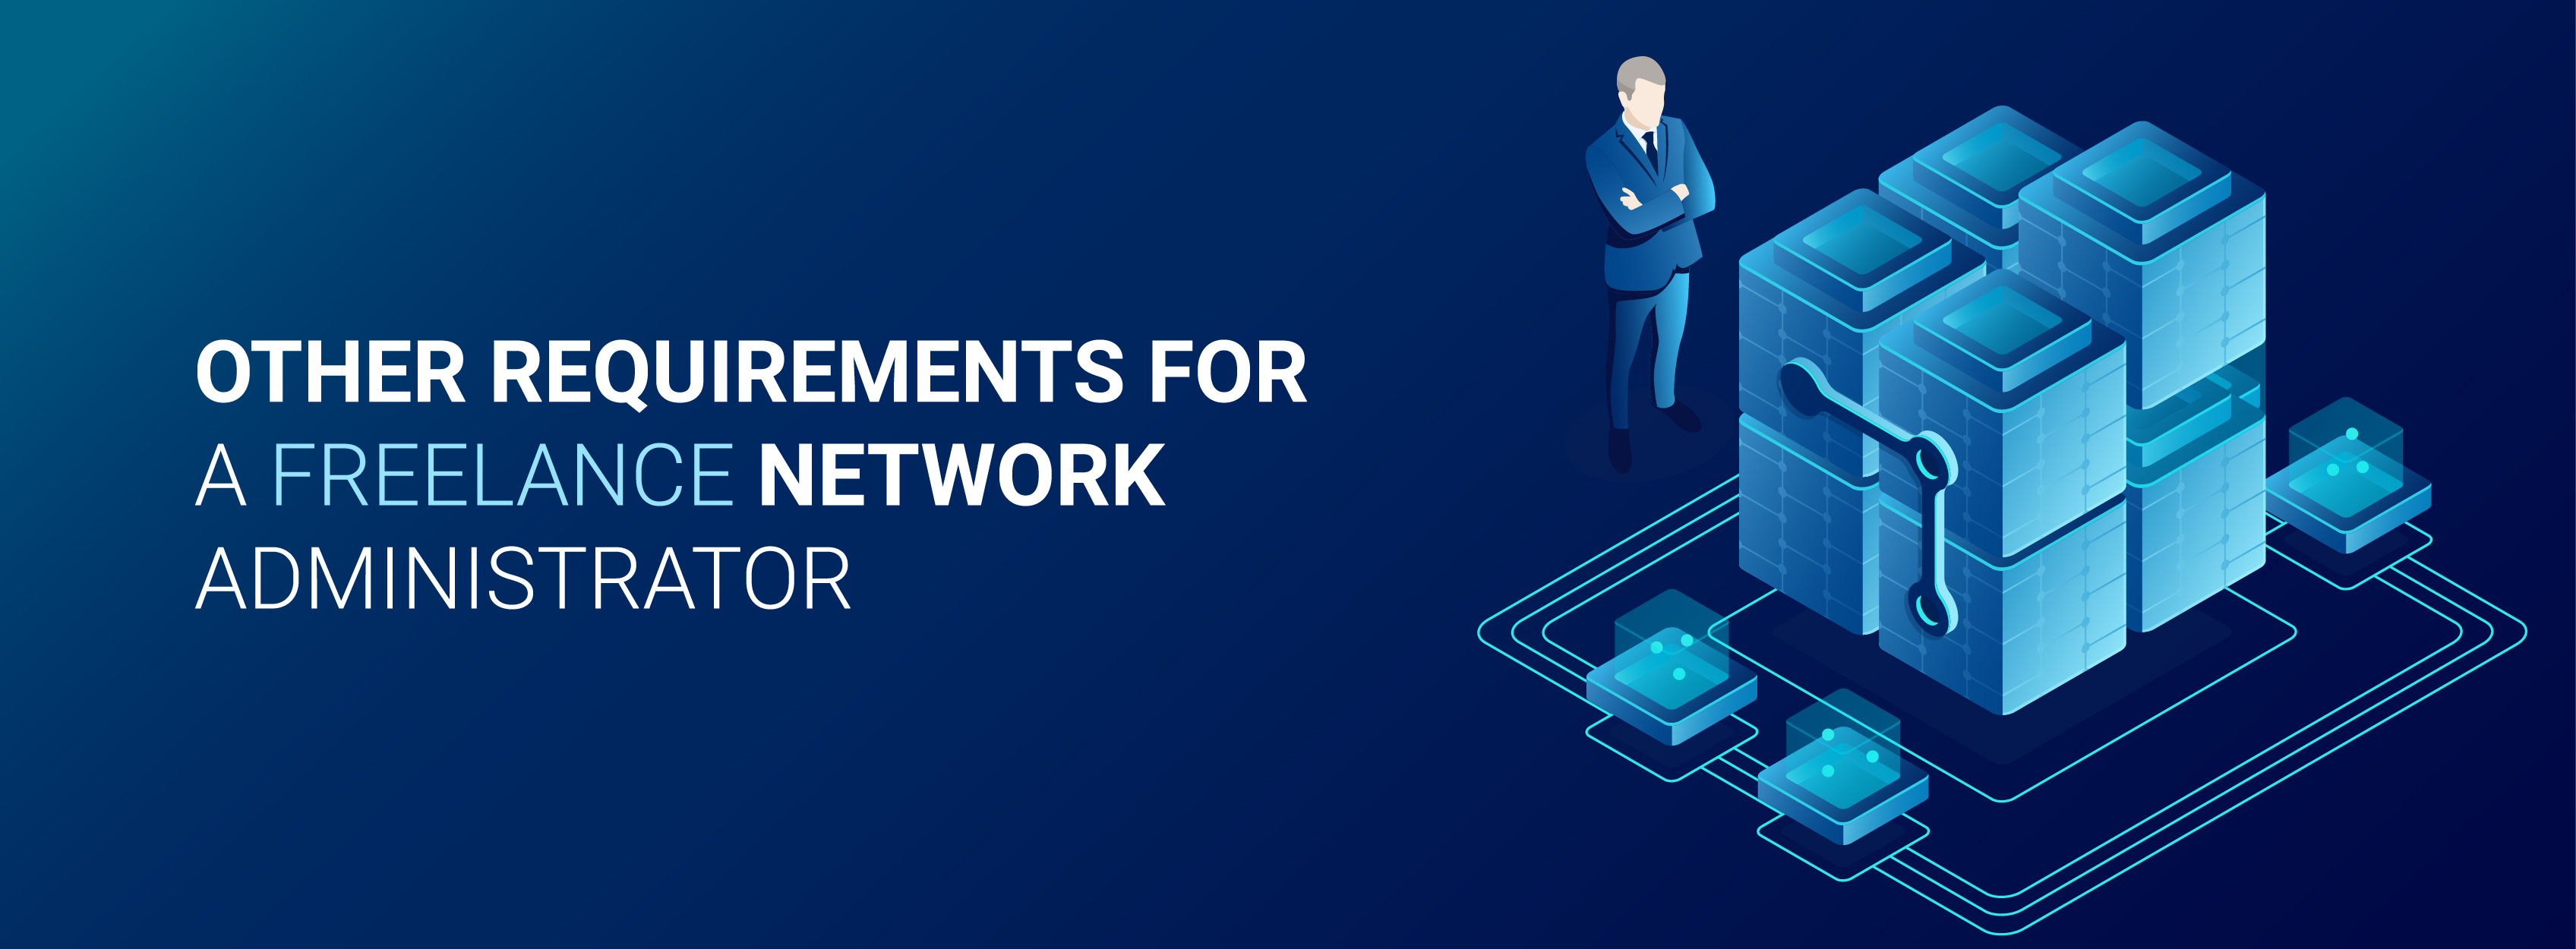 Freelance Network Administrator Requirements